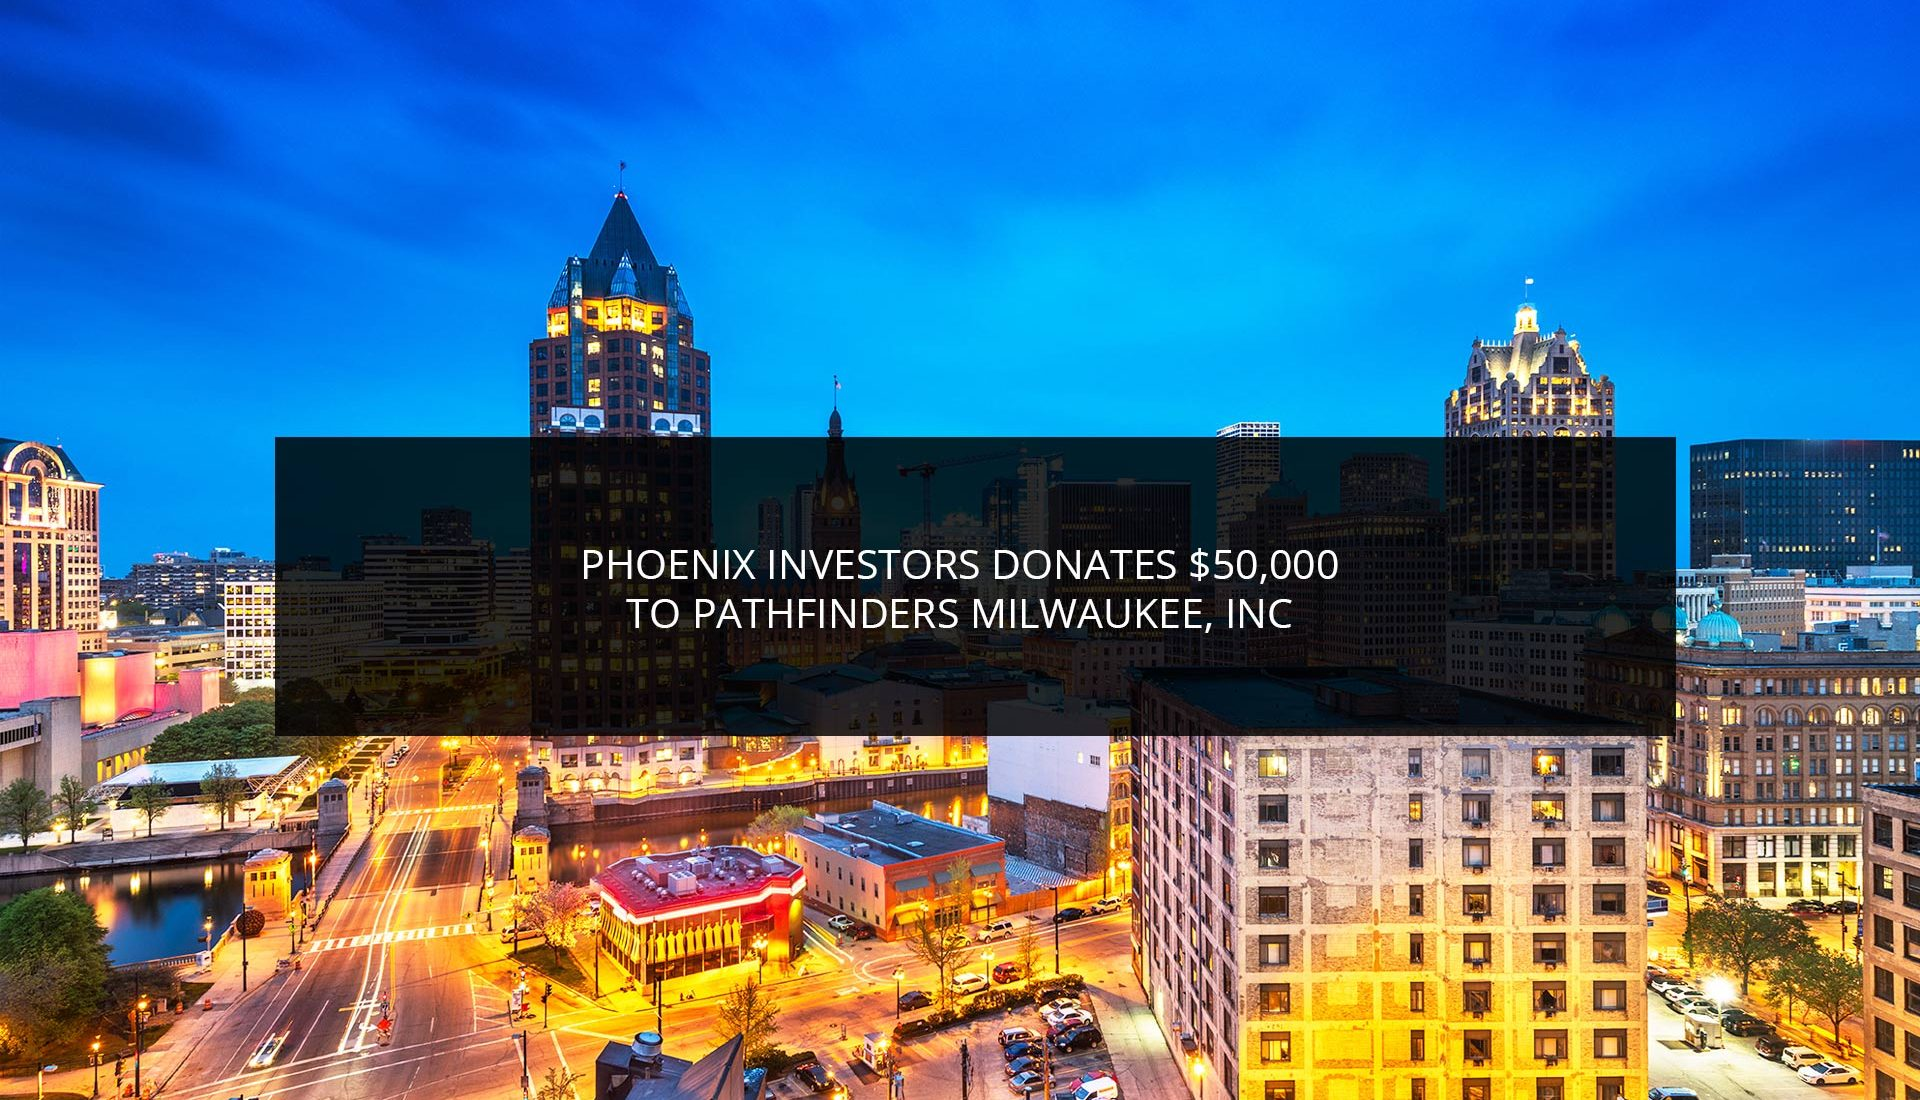 Phoenix Investors Donates $50,000 To Pathfinders Milwaukee, Inc.